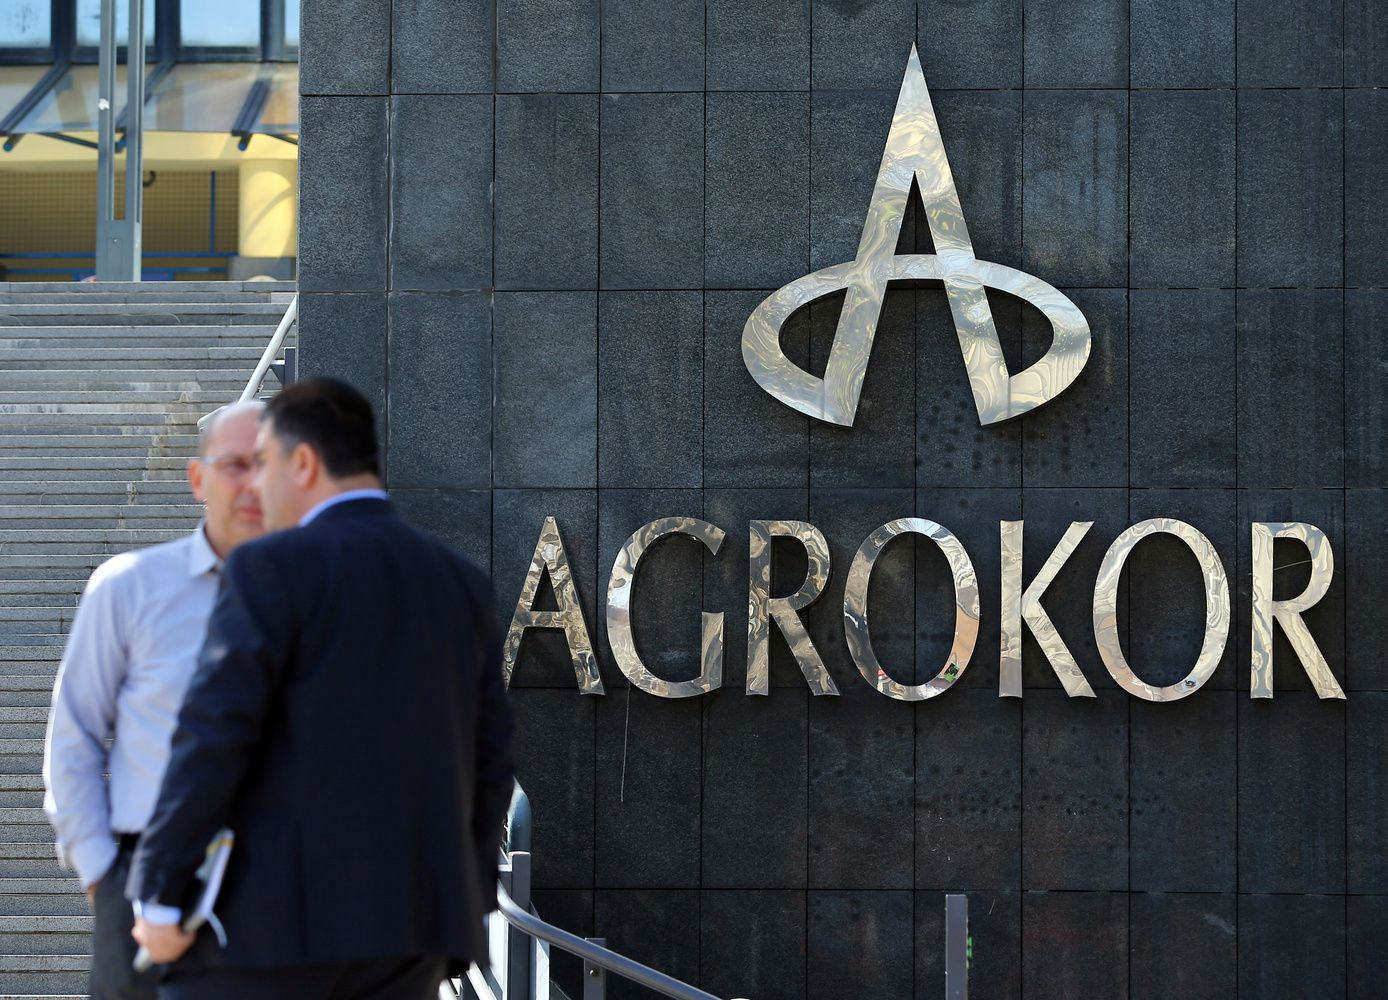 Russian funds play vultures with Croatia's distressed debt